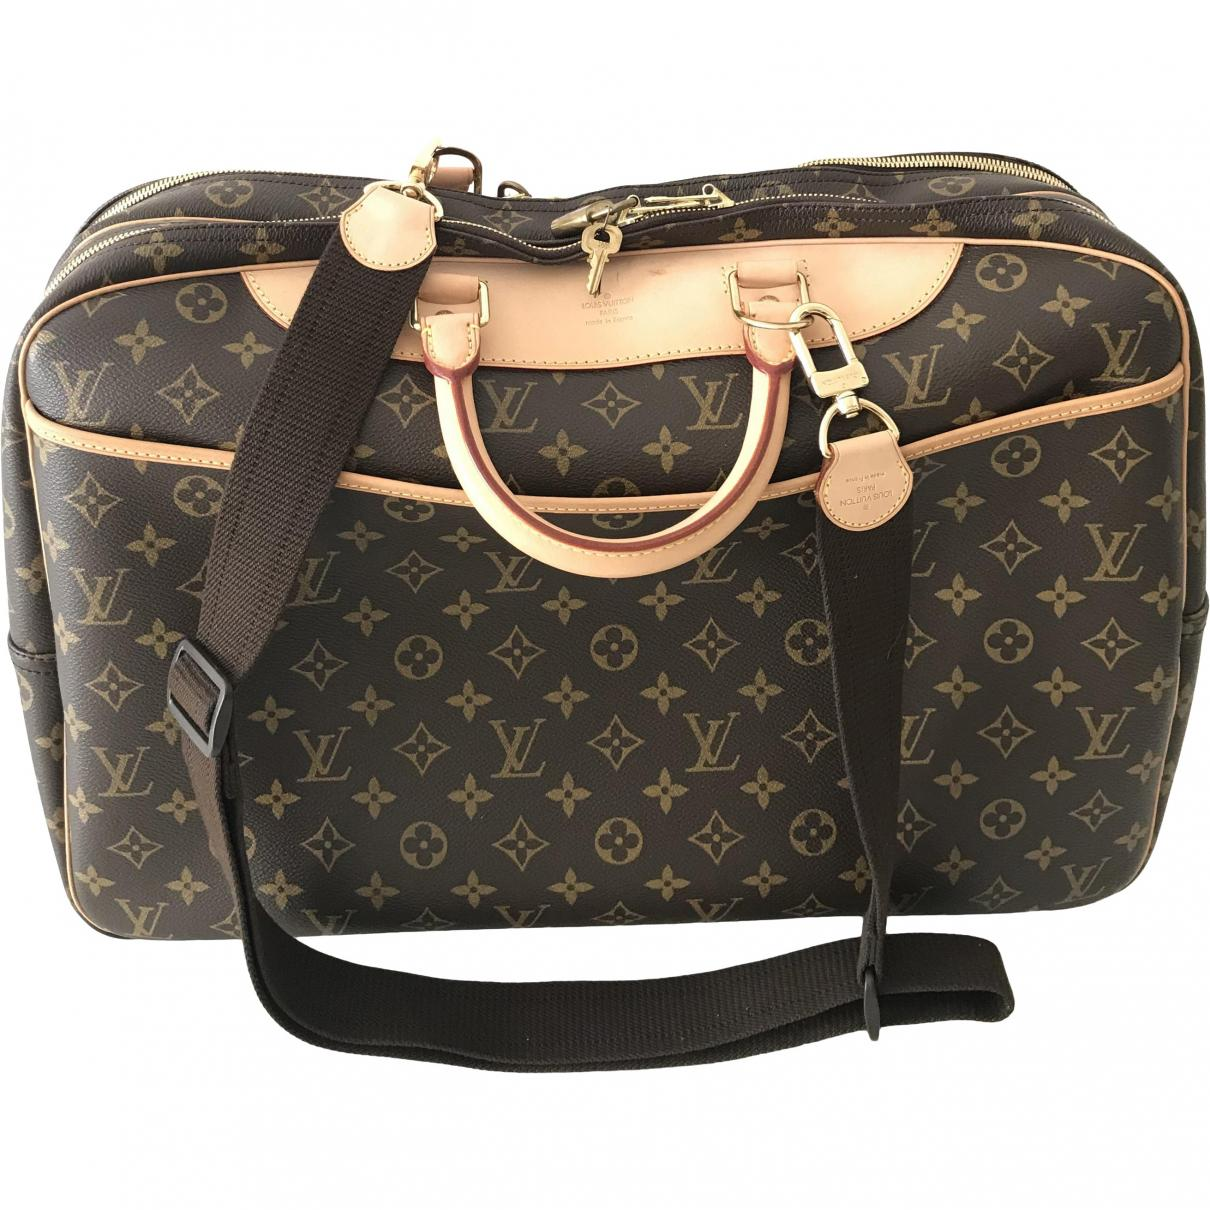 60669493d853 Louis Vuitton Other Leather Bag for Men - Lyst